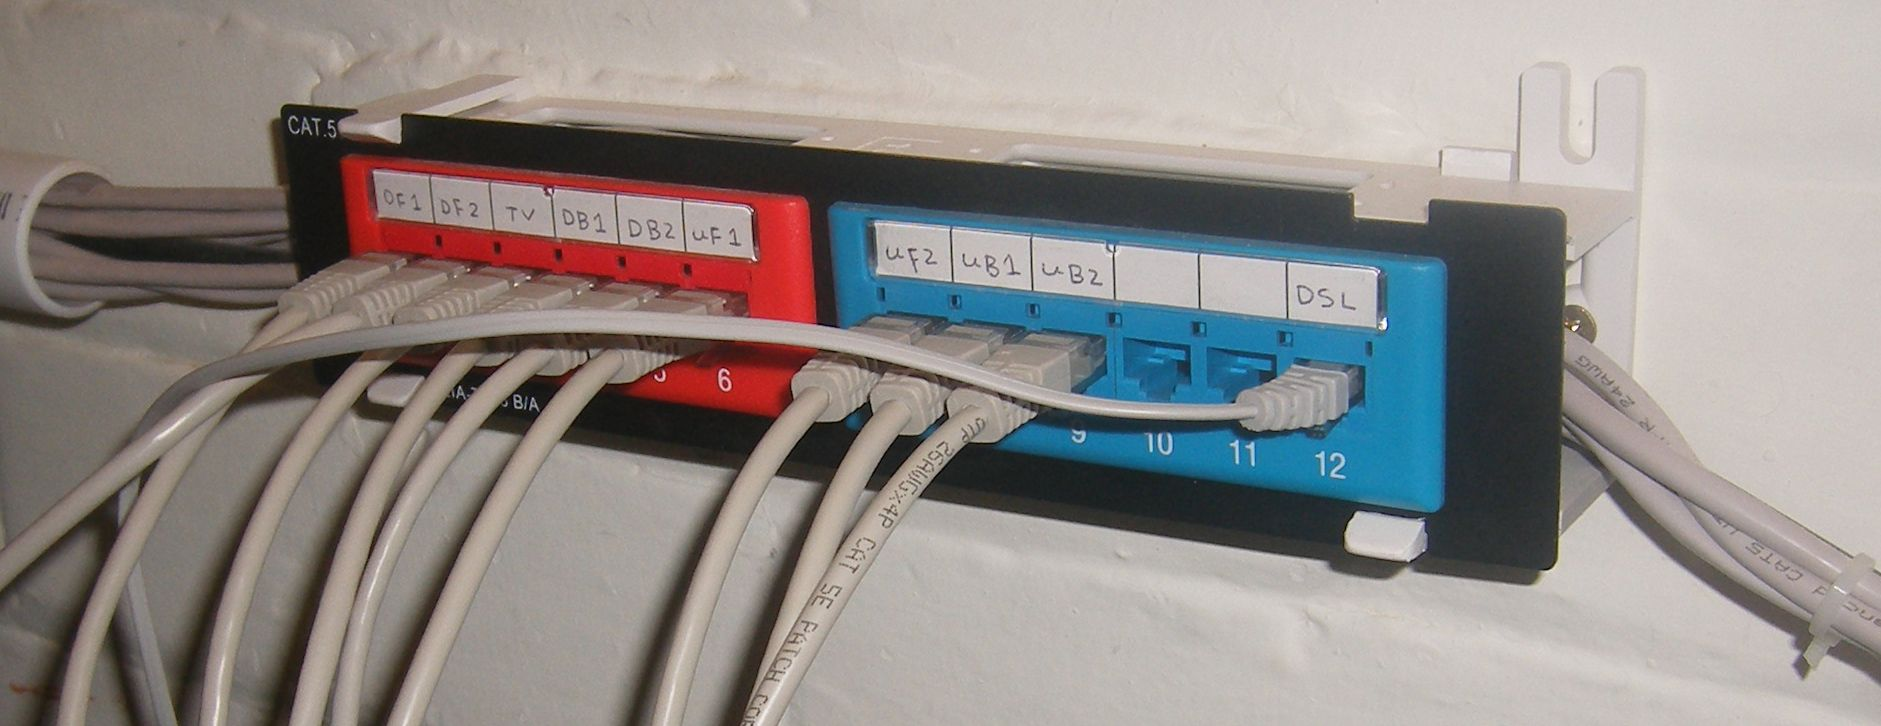 hight resolution of cat 6a patch panel wiring diagrams